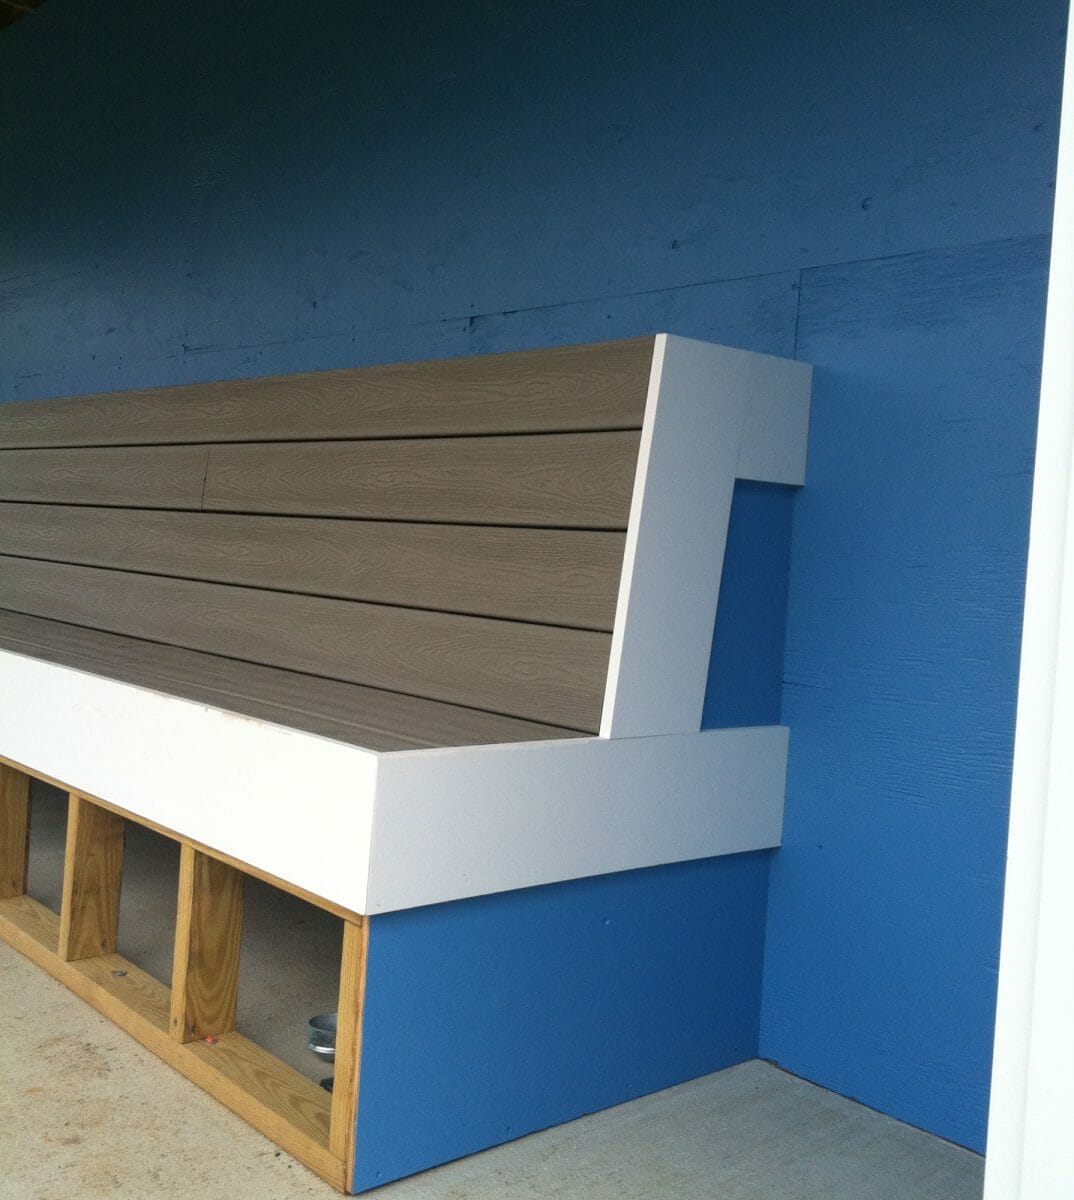 Painted Bench in Dugout